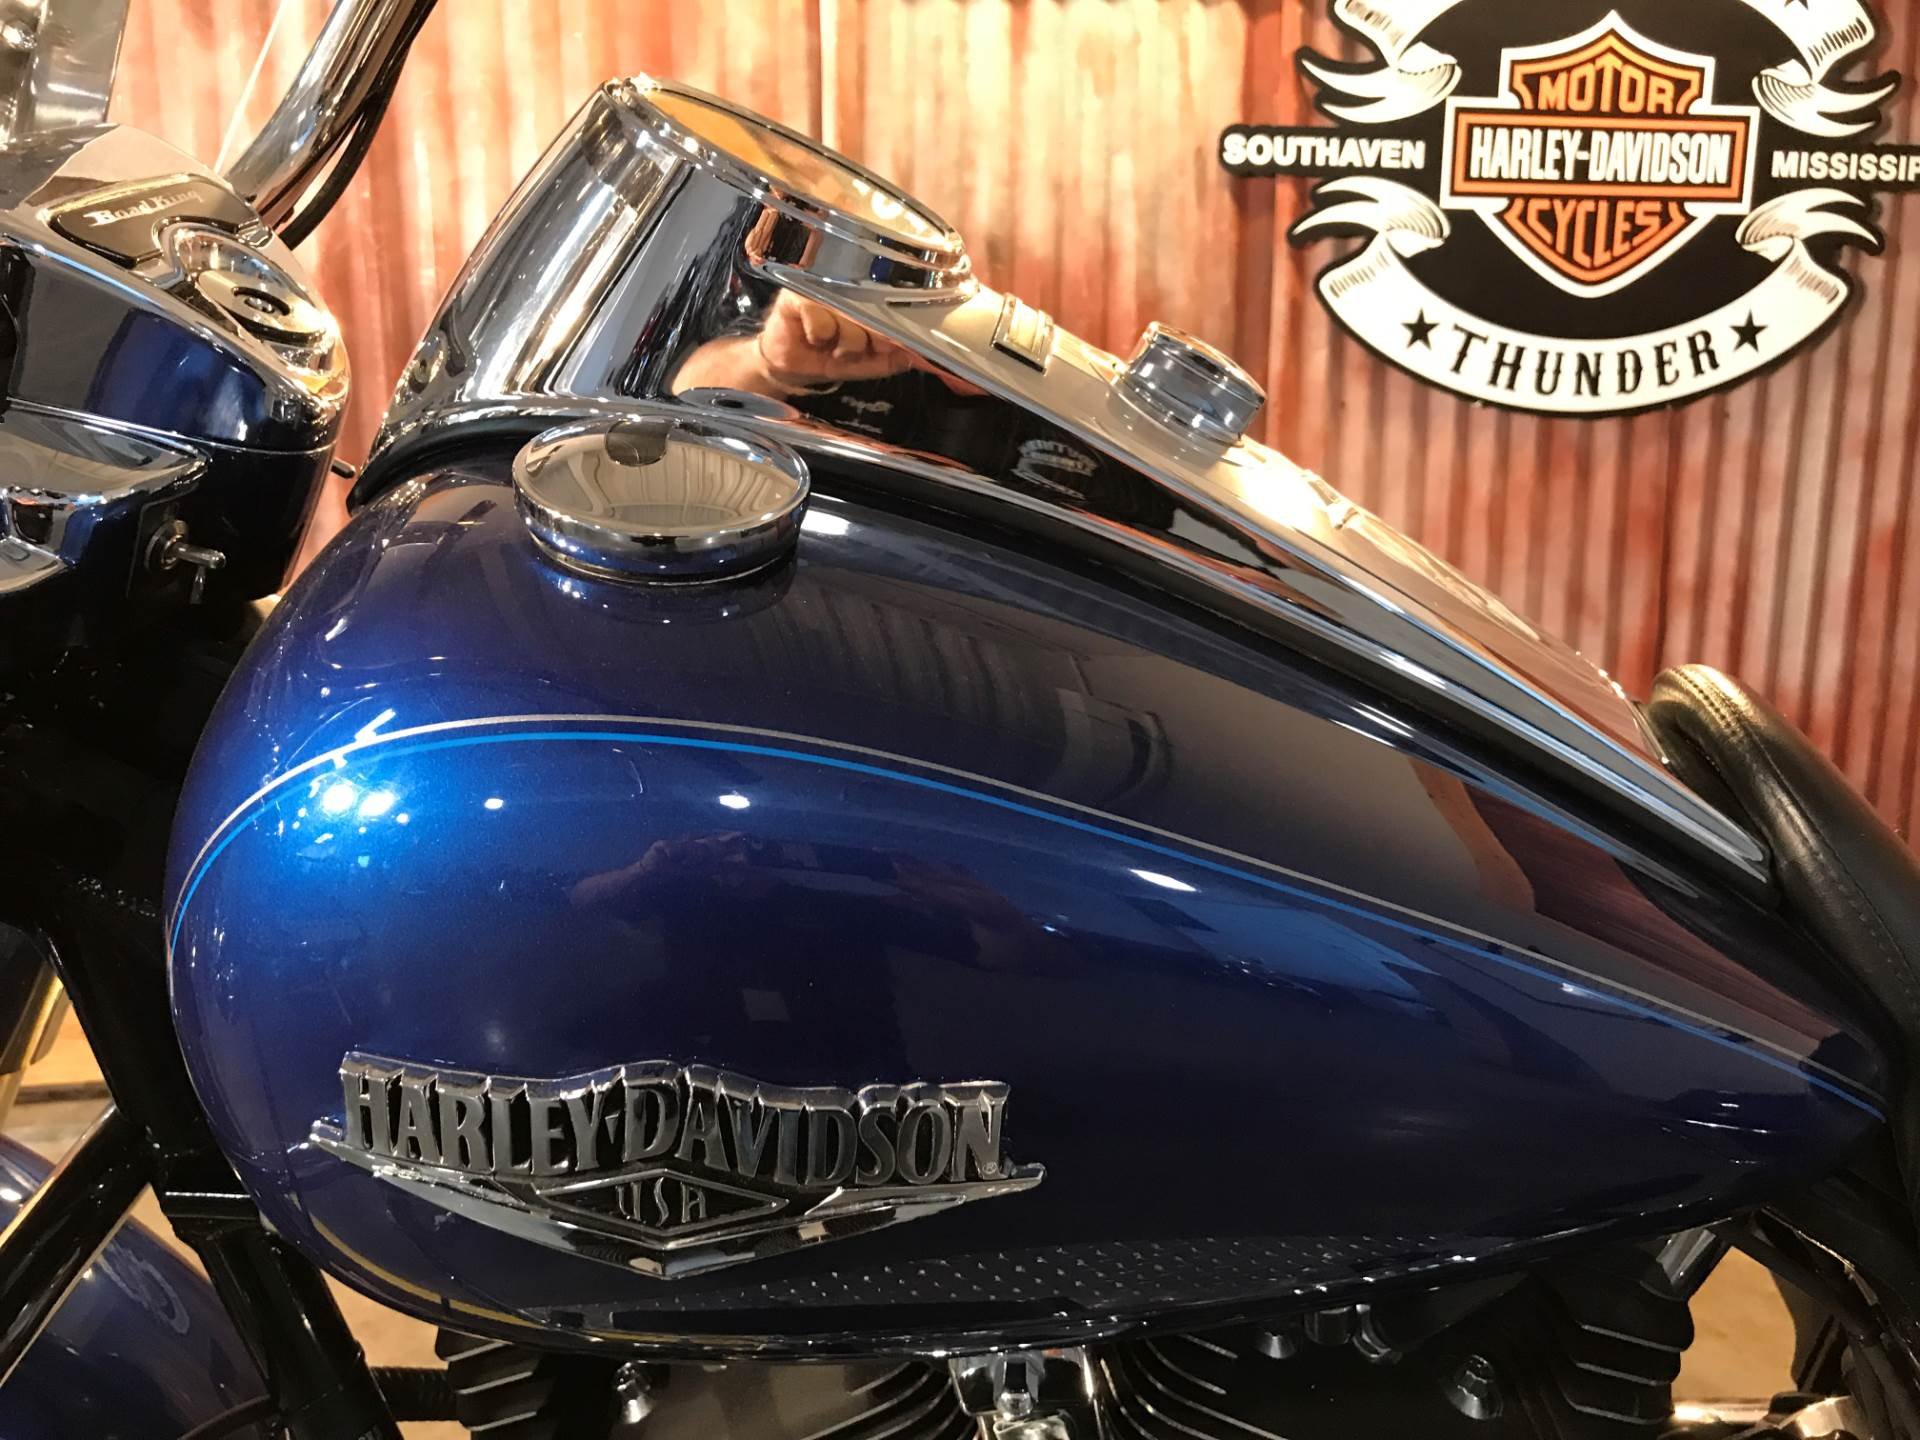 2015 Harley-Davidson Road King® in Southaven, Mississippi